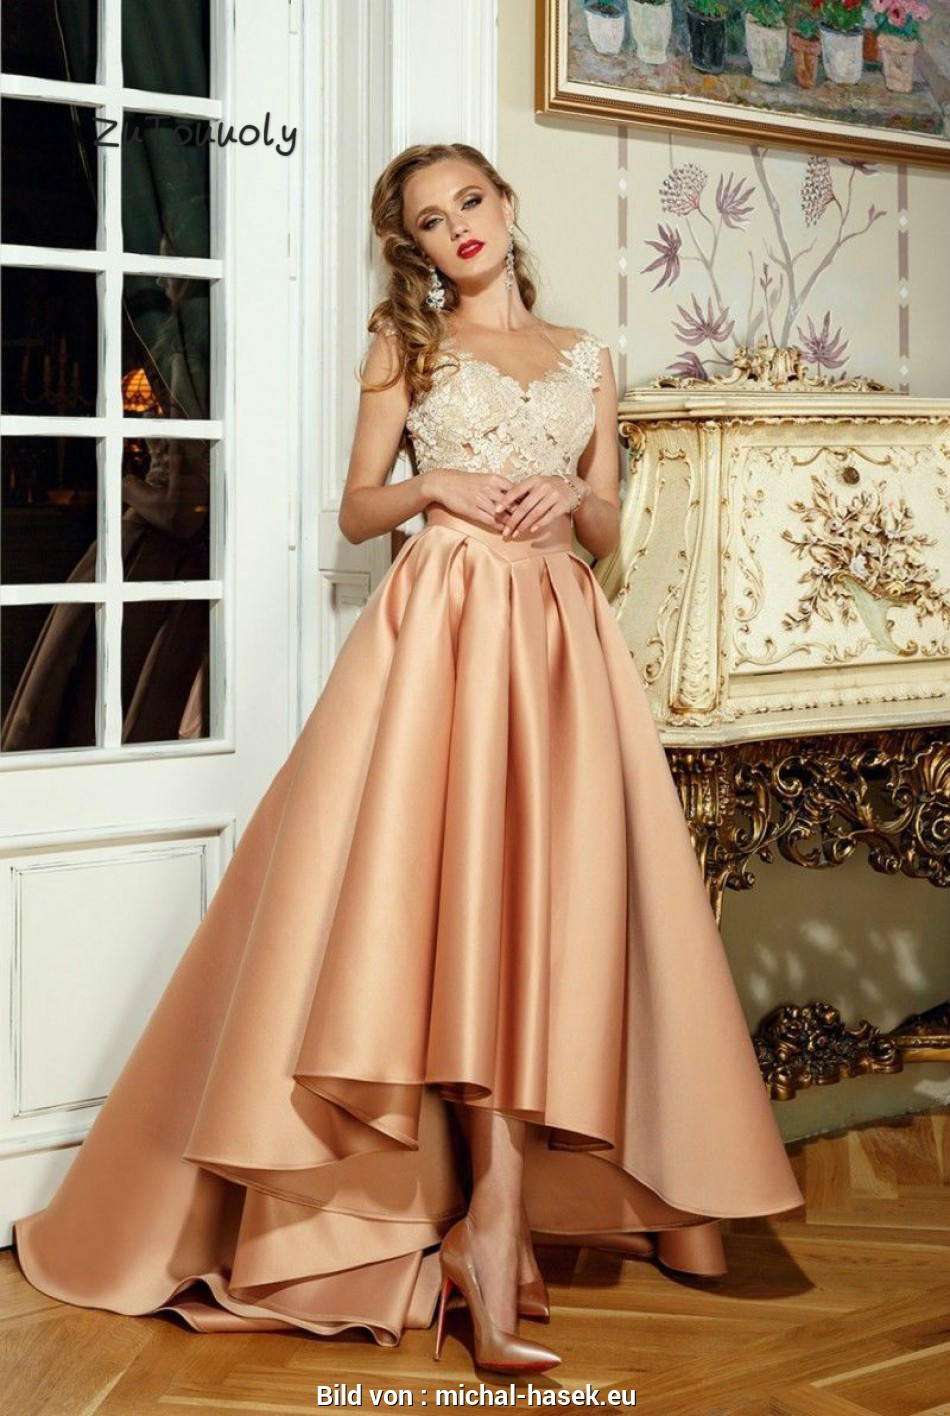 Elegant Rose Gold Asymmetrical Evening Dress Sheer Neck High Low Prom Dress  With Appliques Illusion Top Button Back Evening Gown